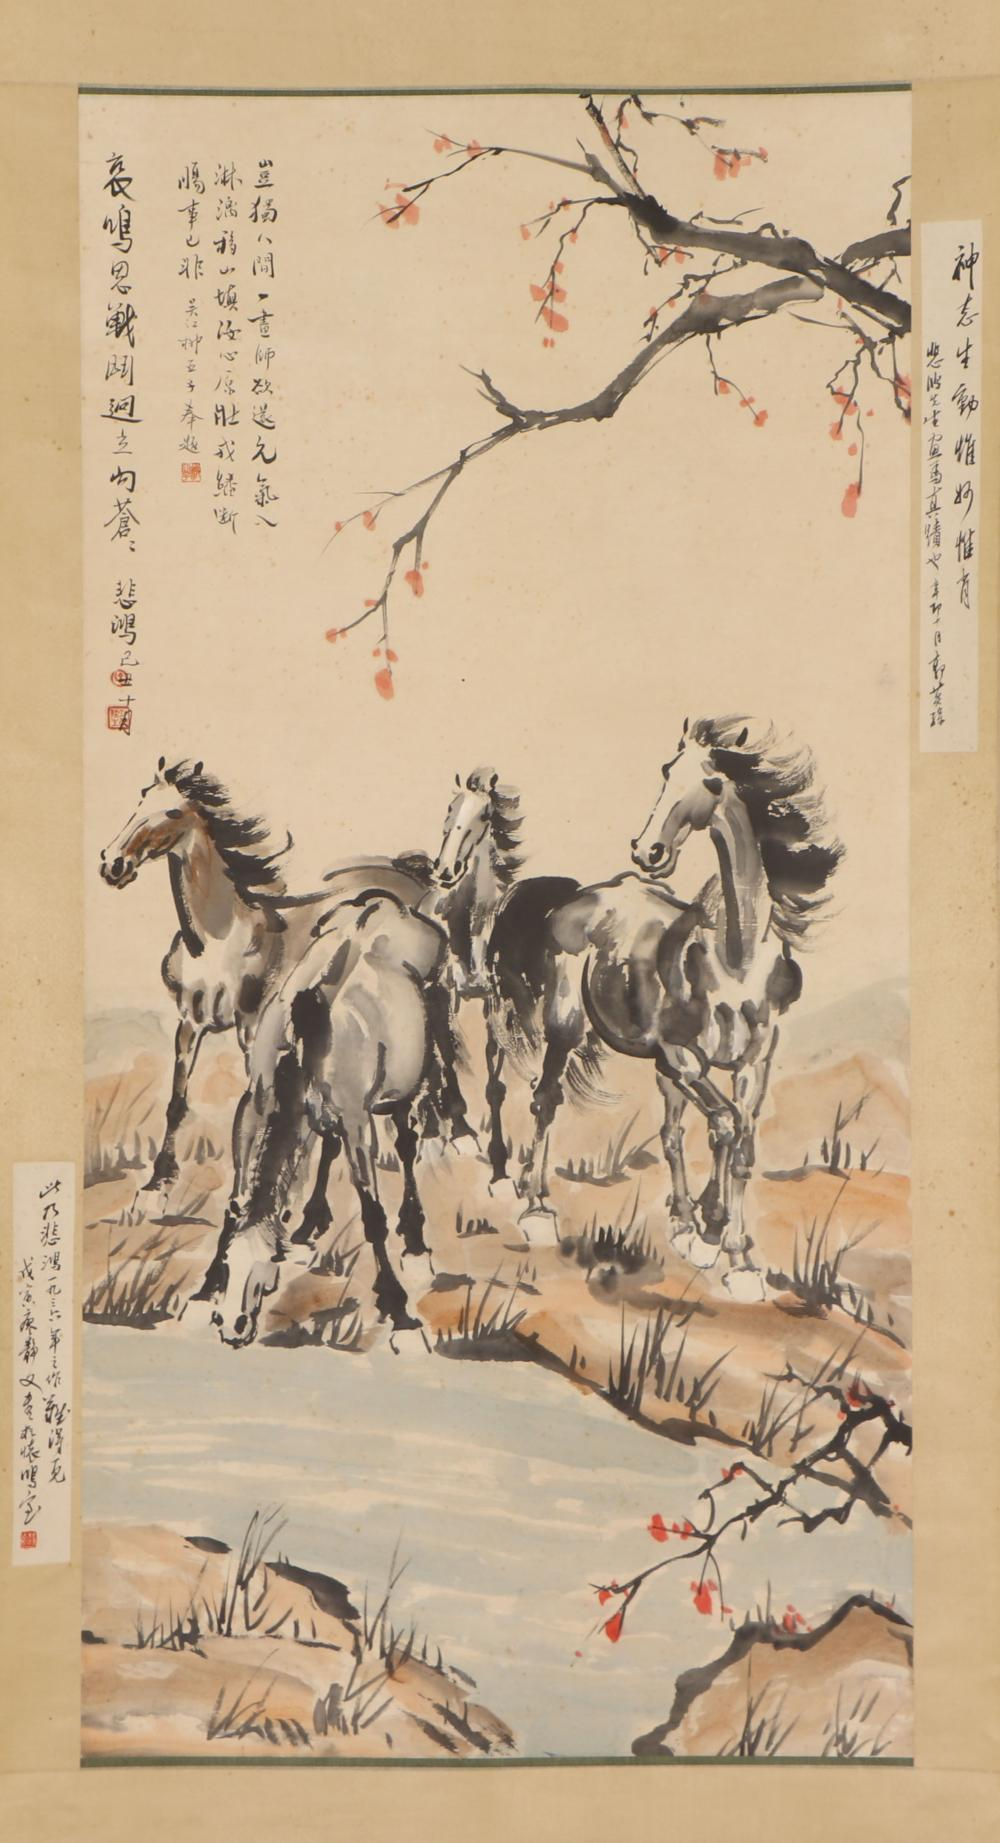 A CHINESE PAINTING OF FINE HORSES